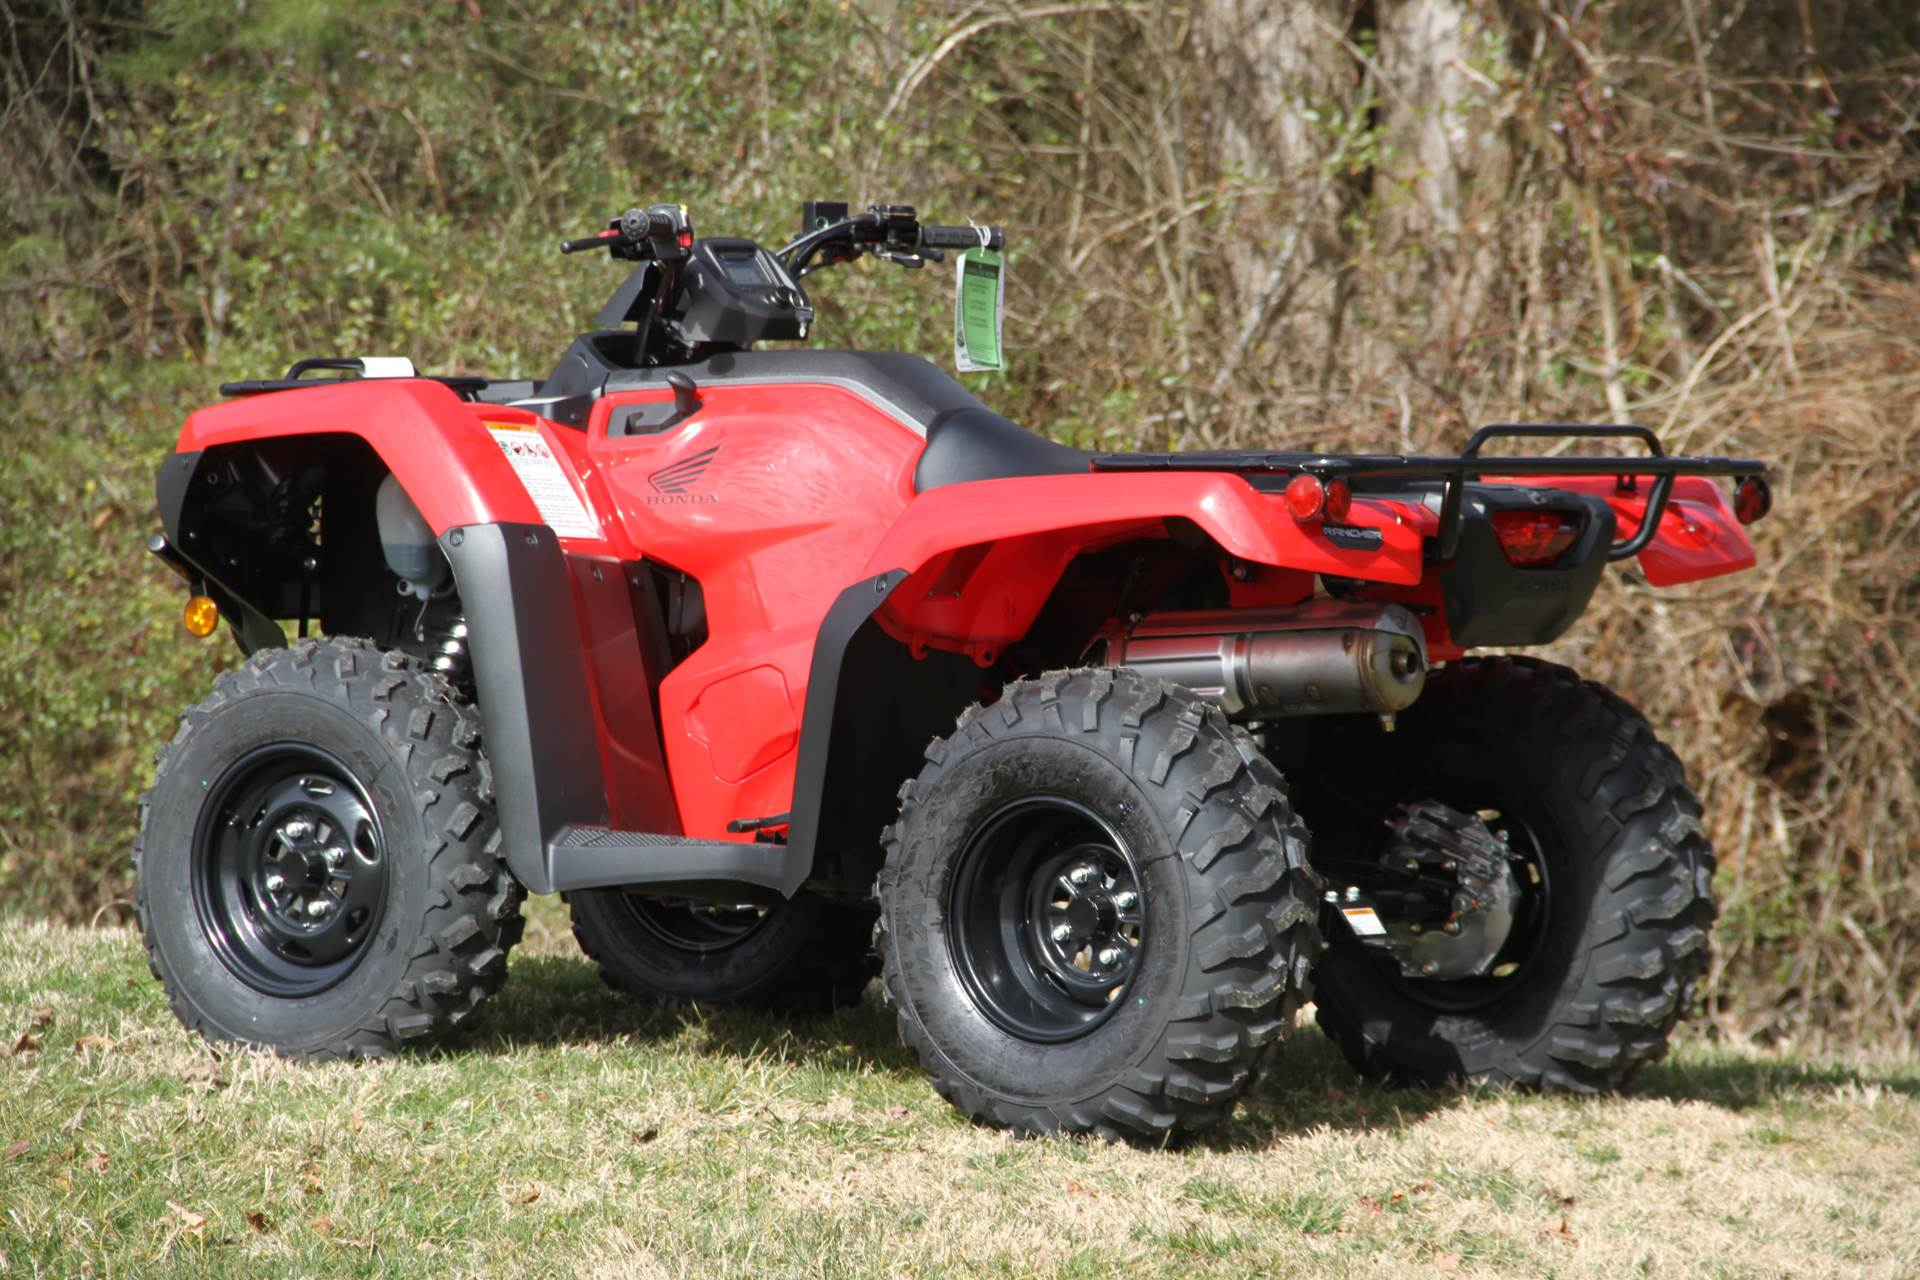 2020 Honda FourTrax Rancher 4x4 in Hendersonville, North Carolina - Photo 17